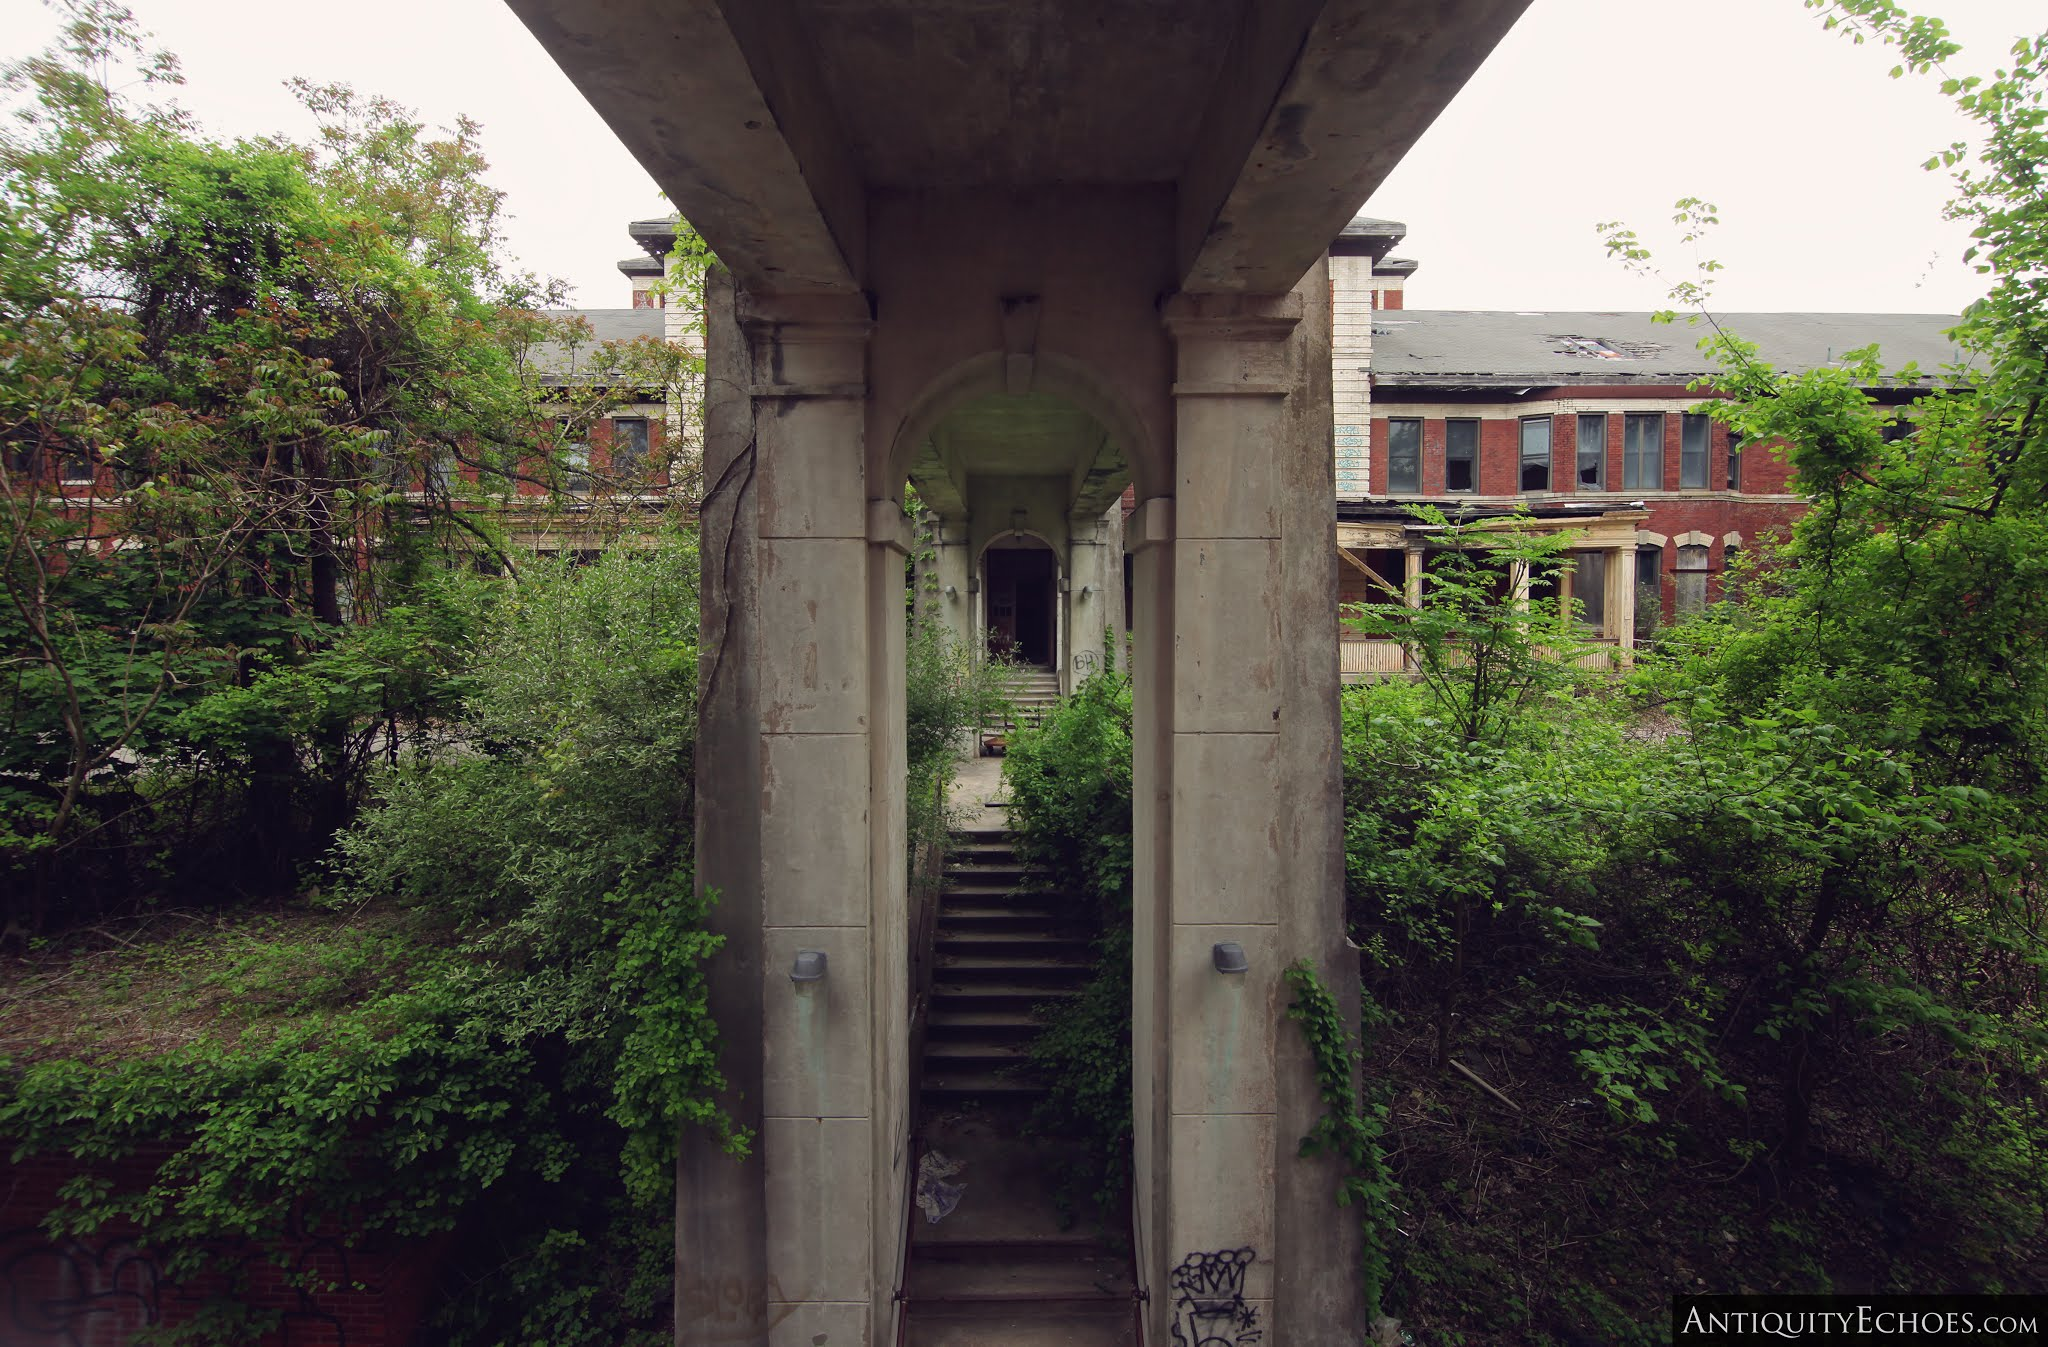 Overbrook Asylum - Under the Skyway